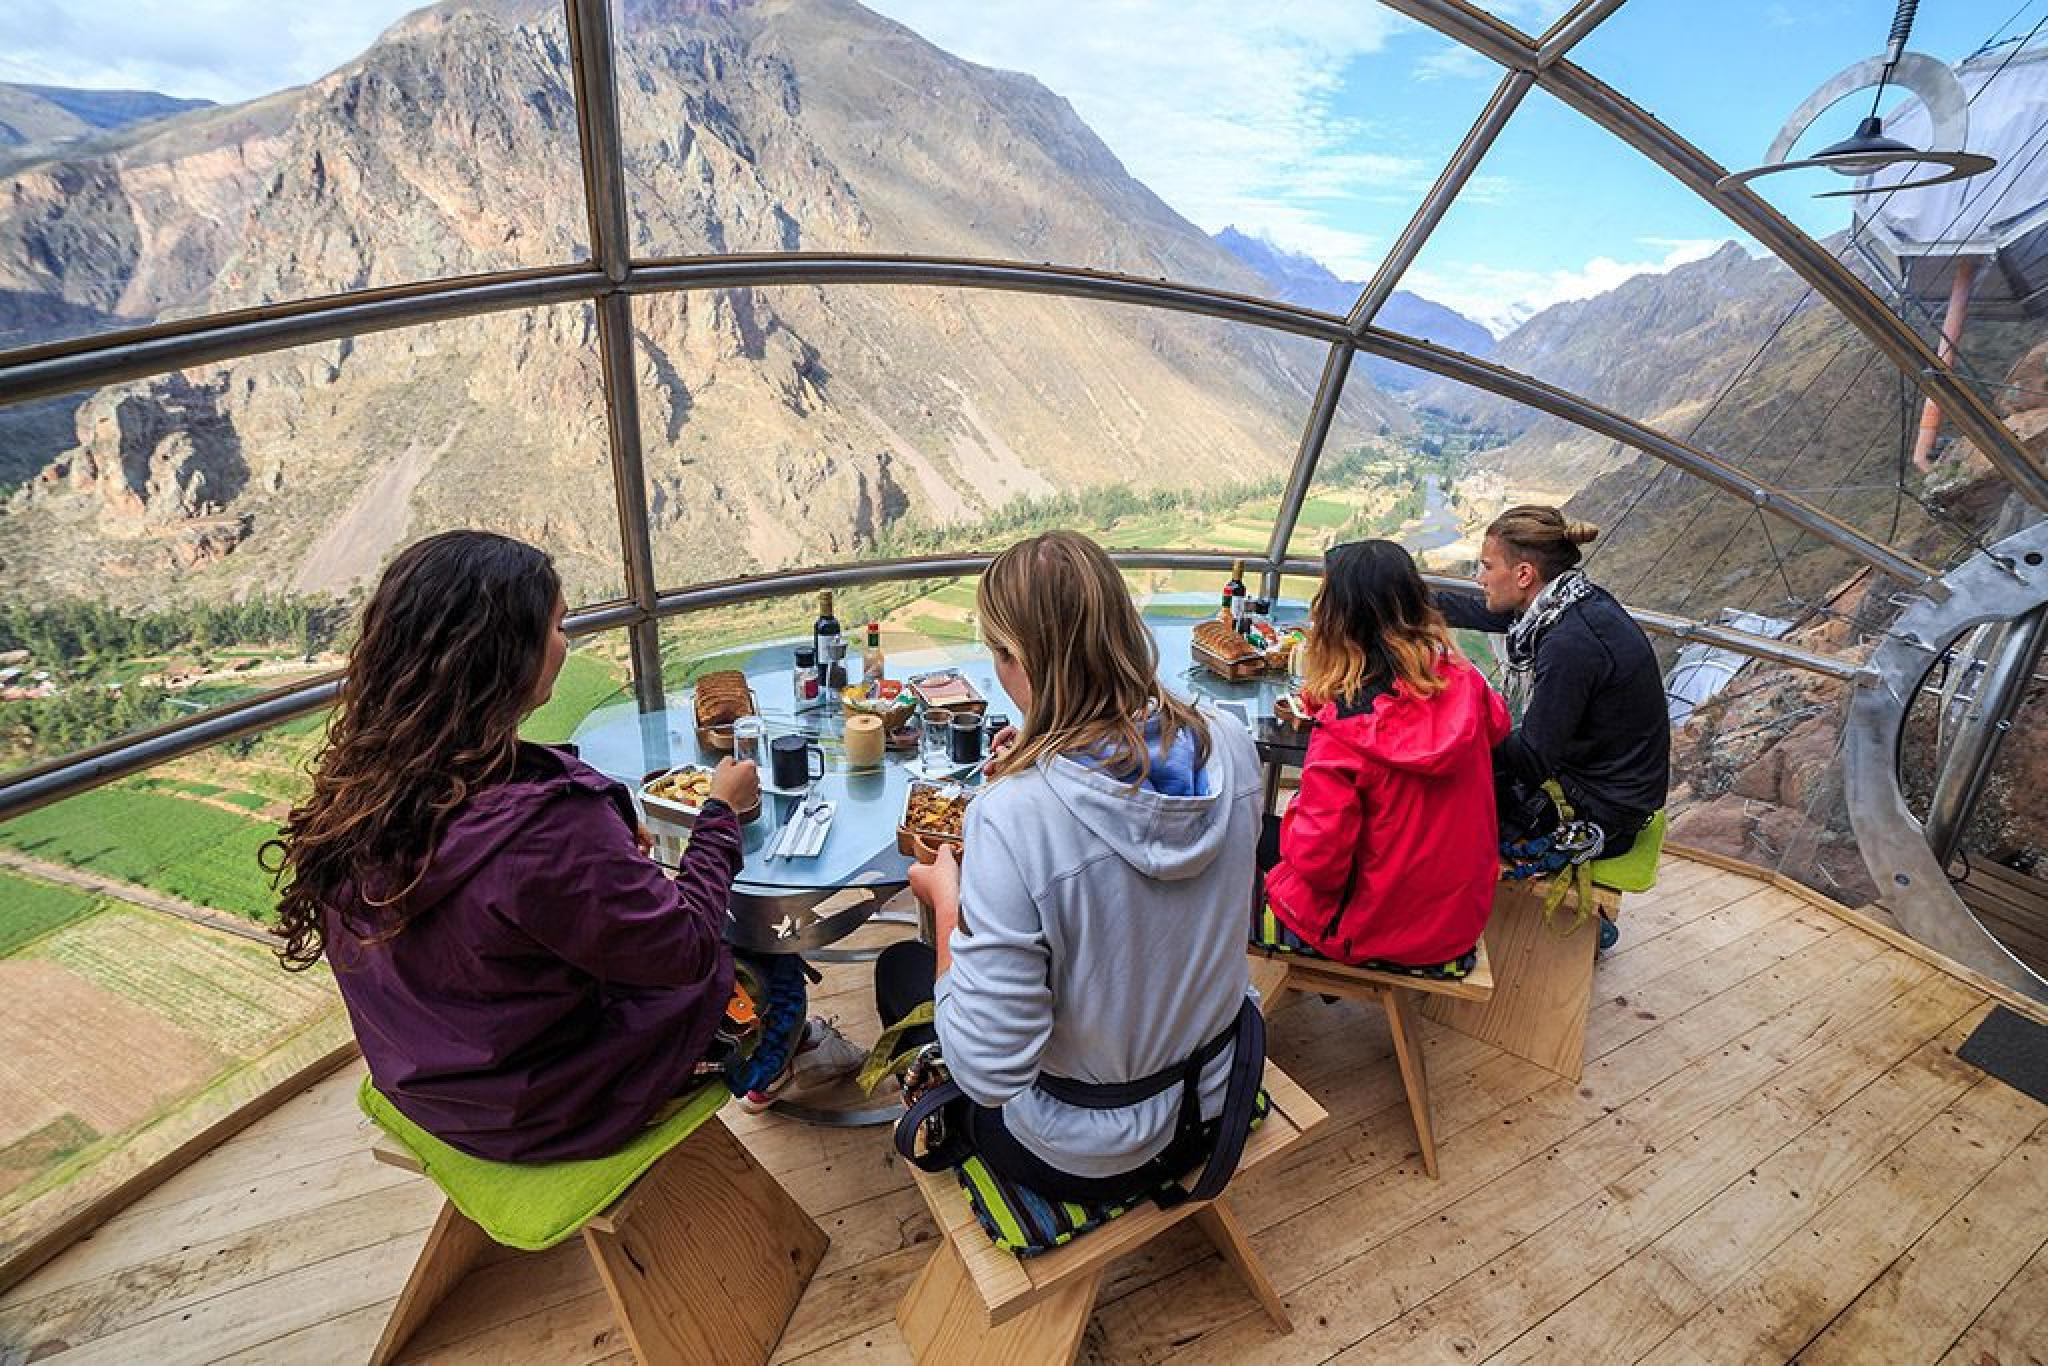 Lunch at Skylodge with Via Ferrata and Zipline